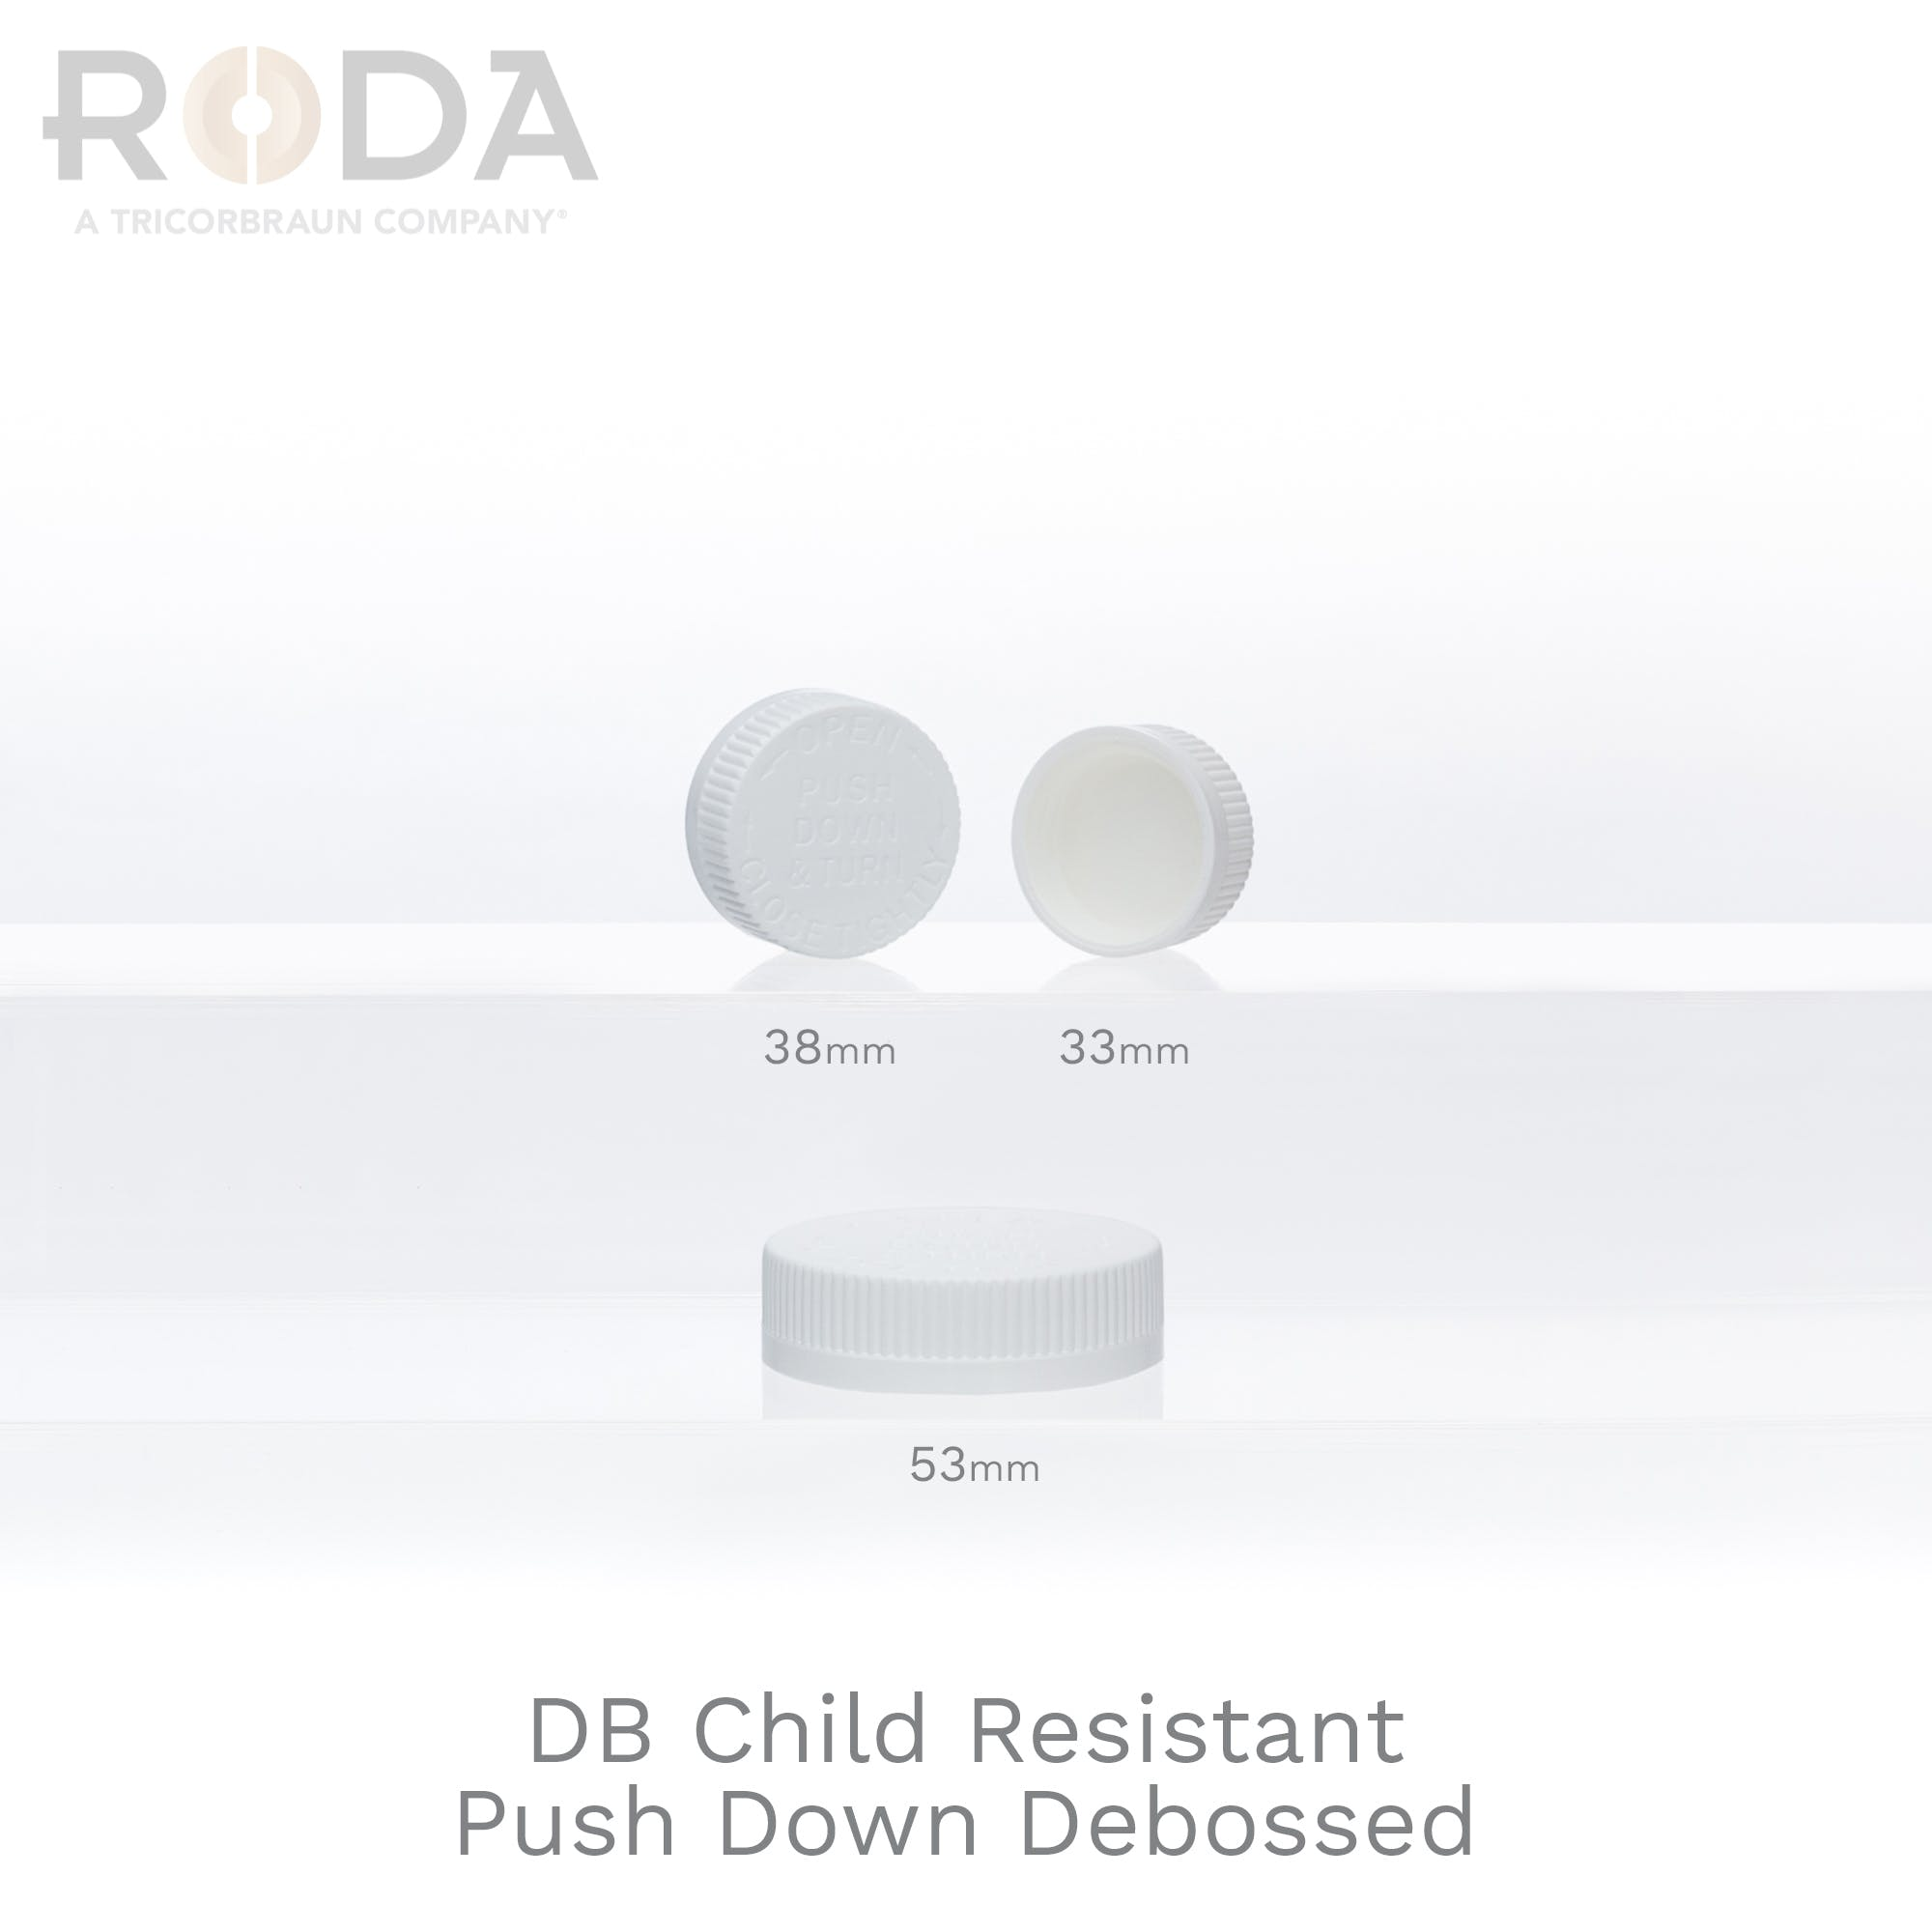 DB Child Resistant Push Down Debossed